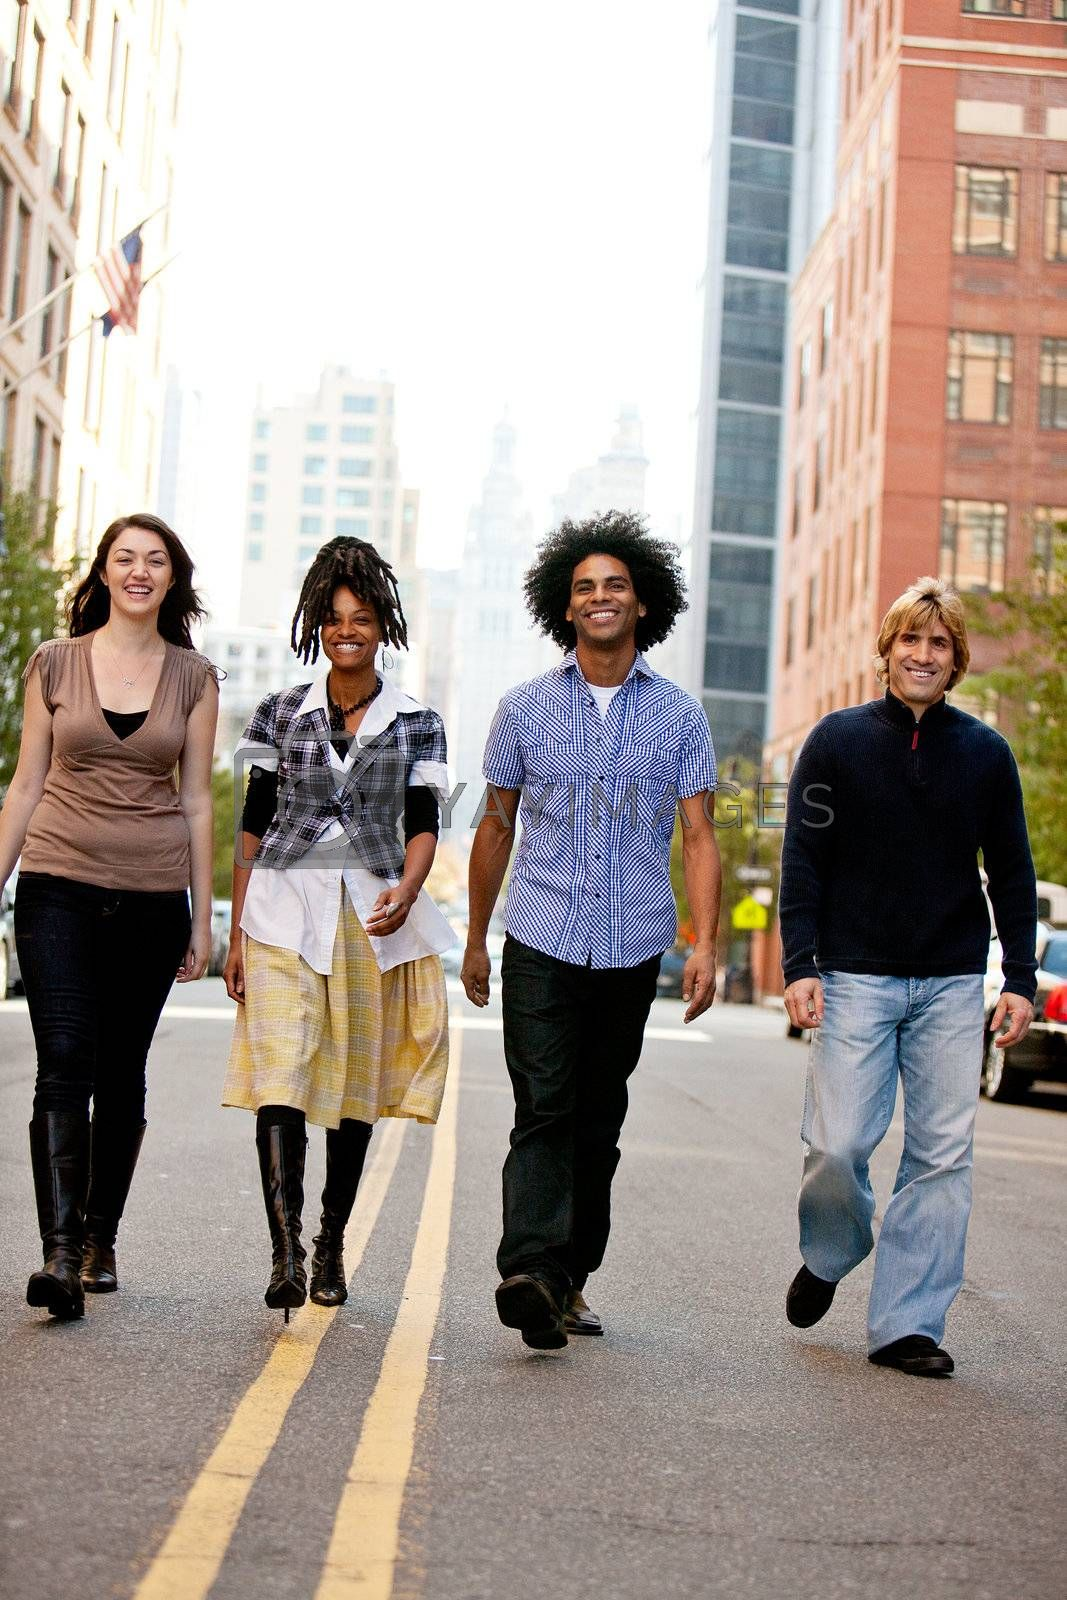 A group of young adults in the city on a street